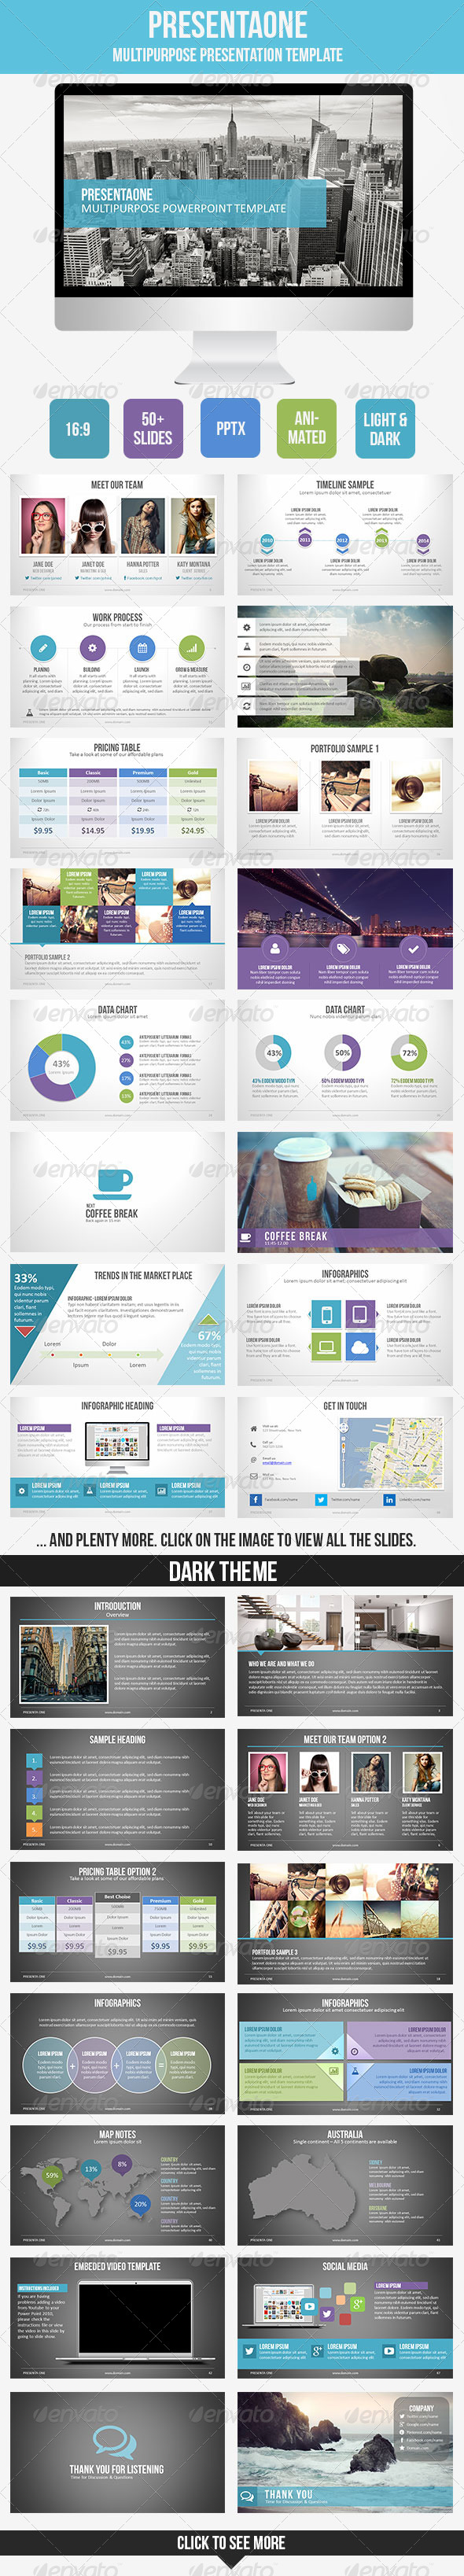 GraphicRiver PresentaOne PowerPoint Template 7602014